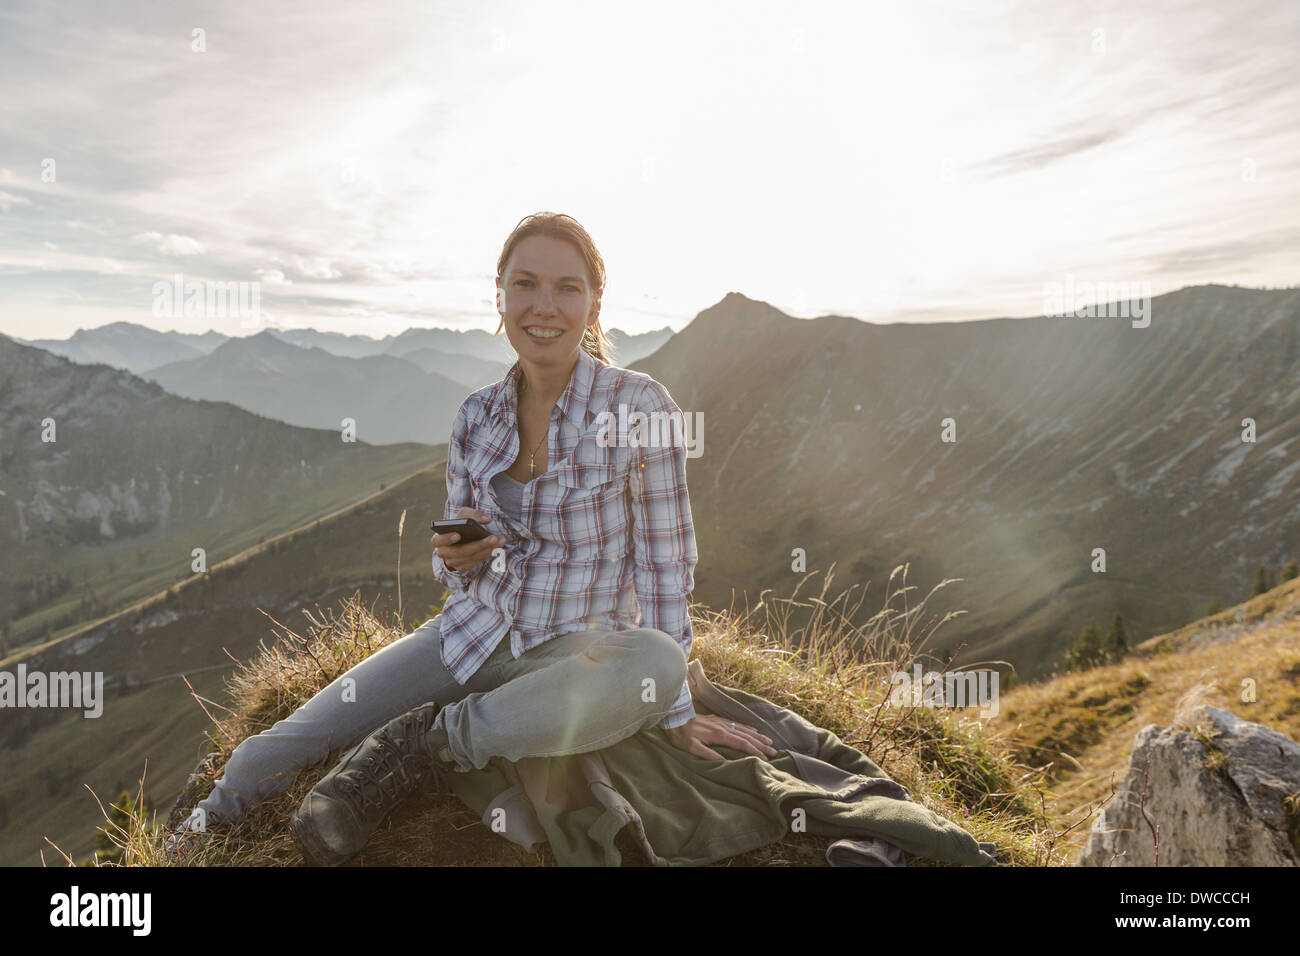 Portrait of a mid adult woman backpacker with smartphone, Achensee, Tyrol, Austria - Stock Image